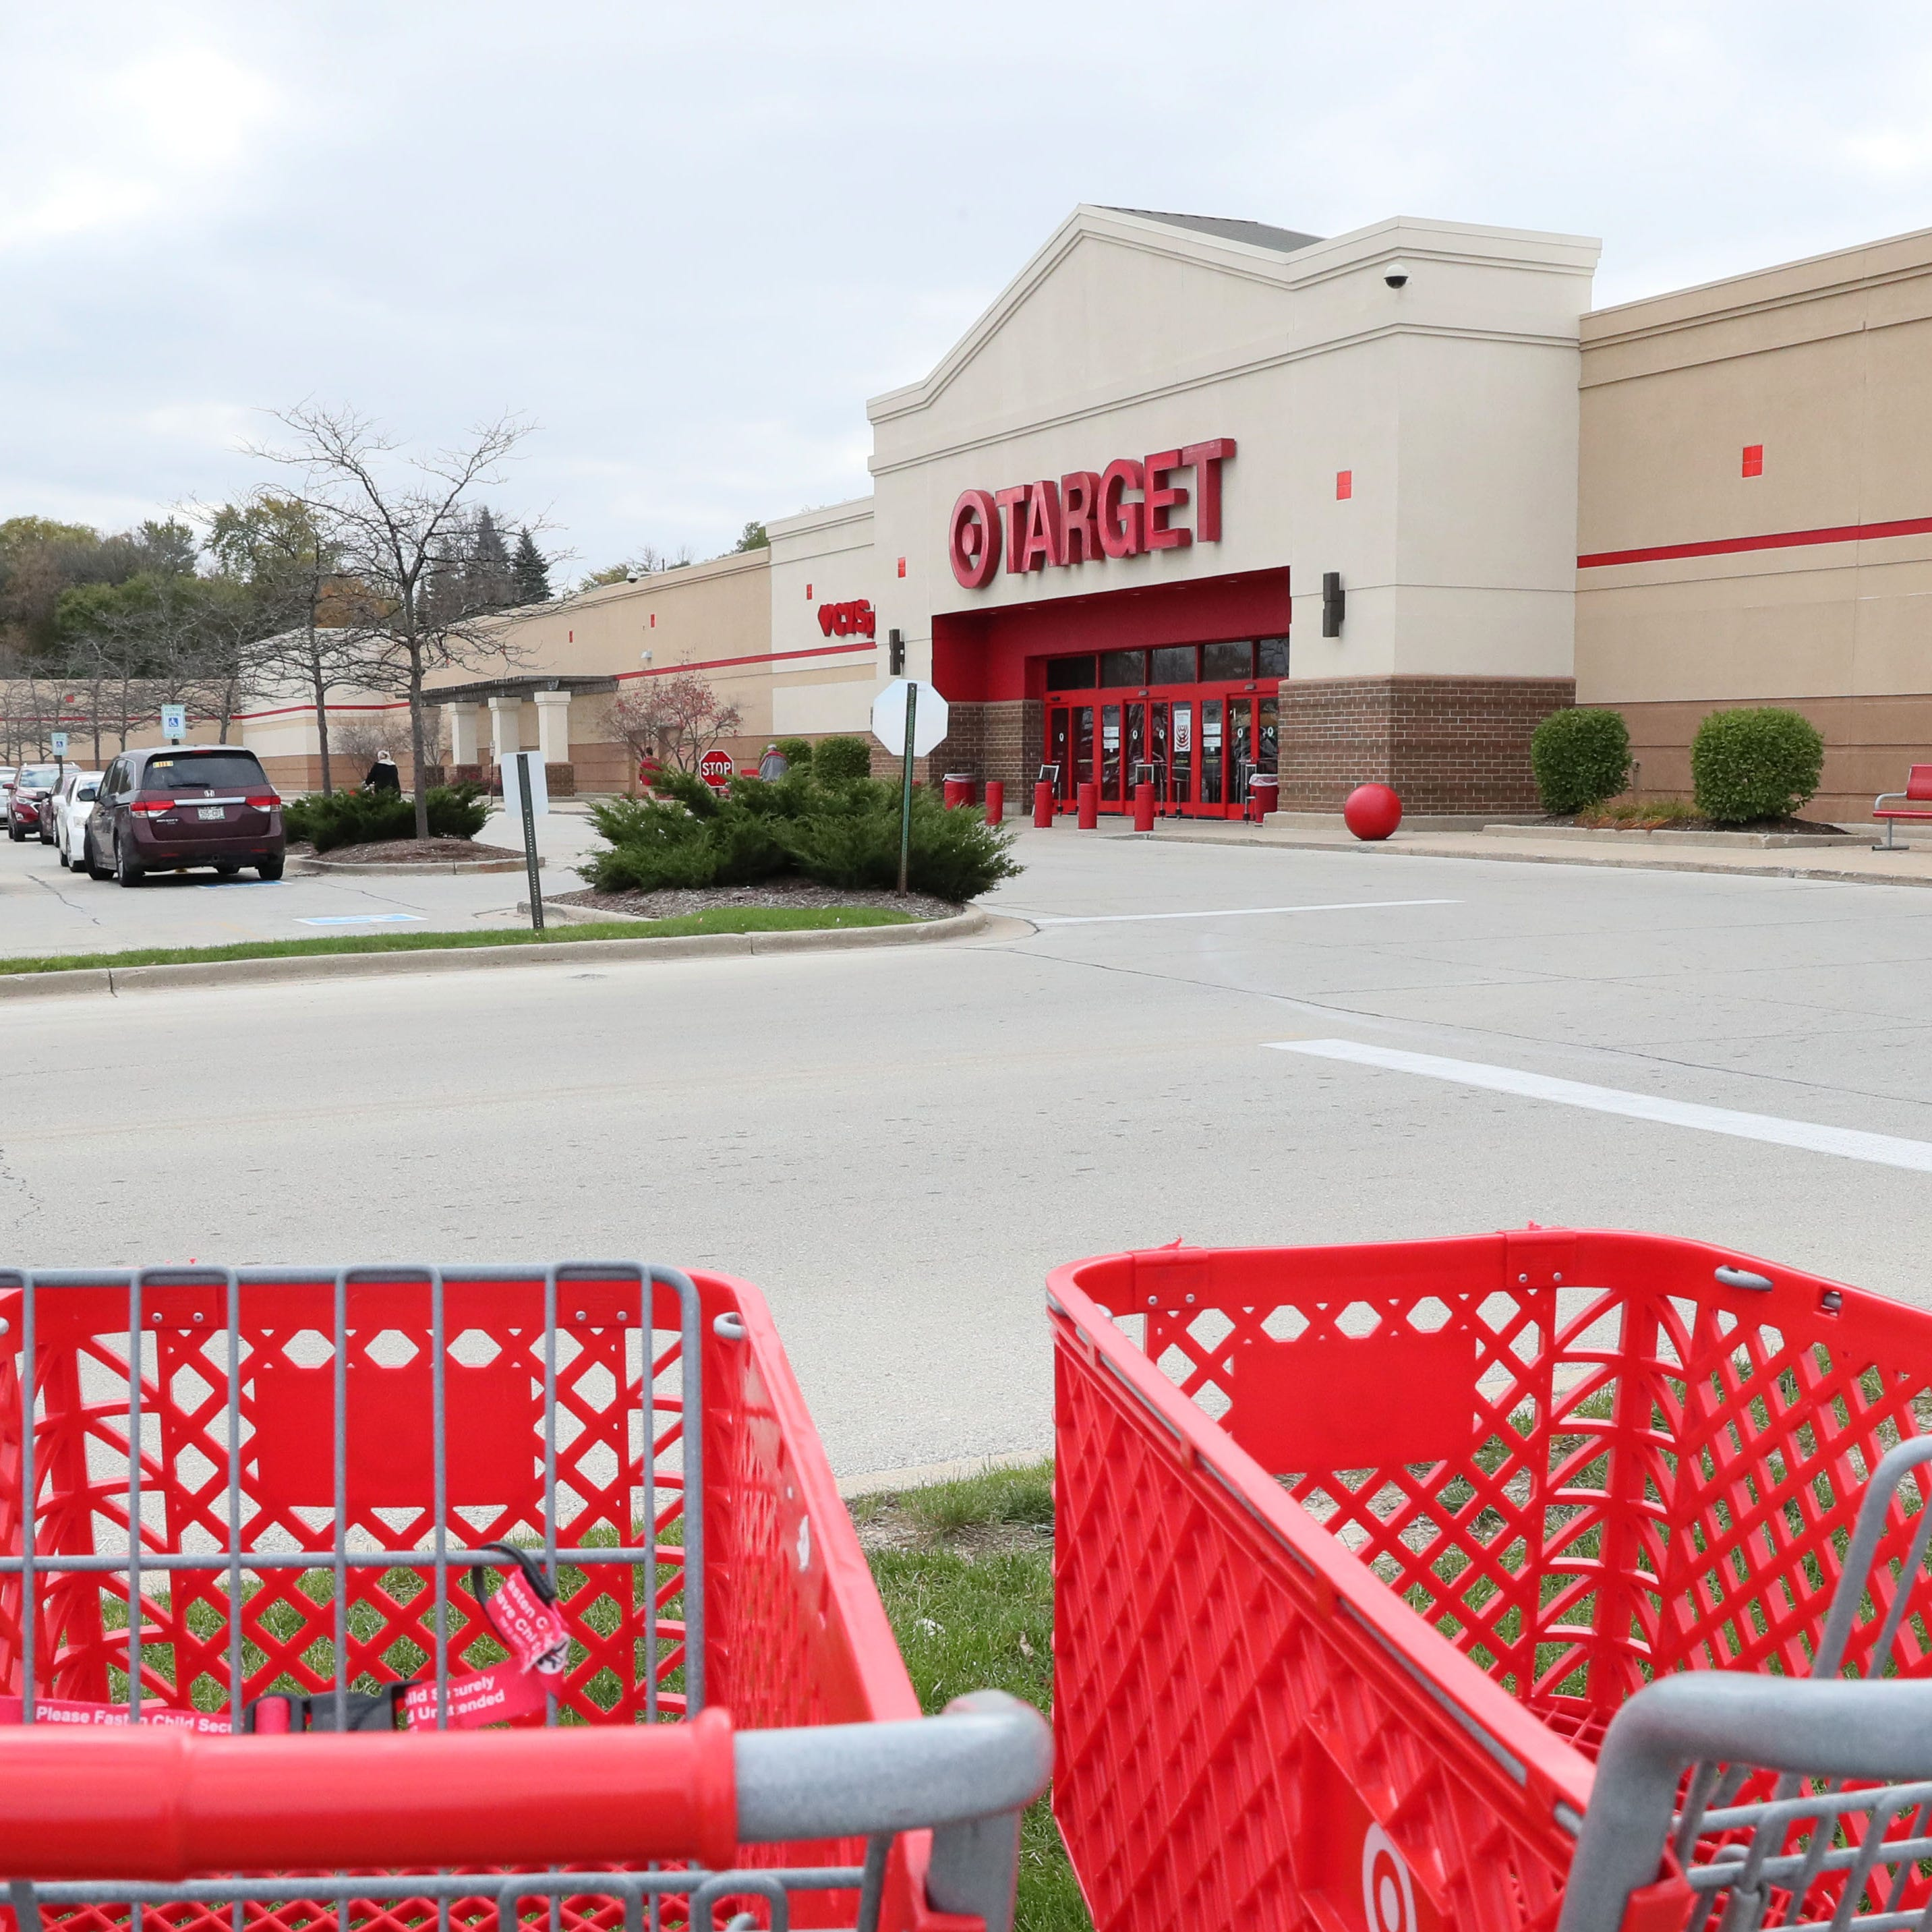 The Greenfield Target is closed, but you can still shop there – sort of